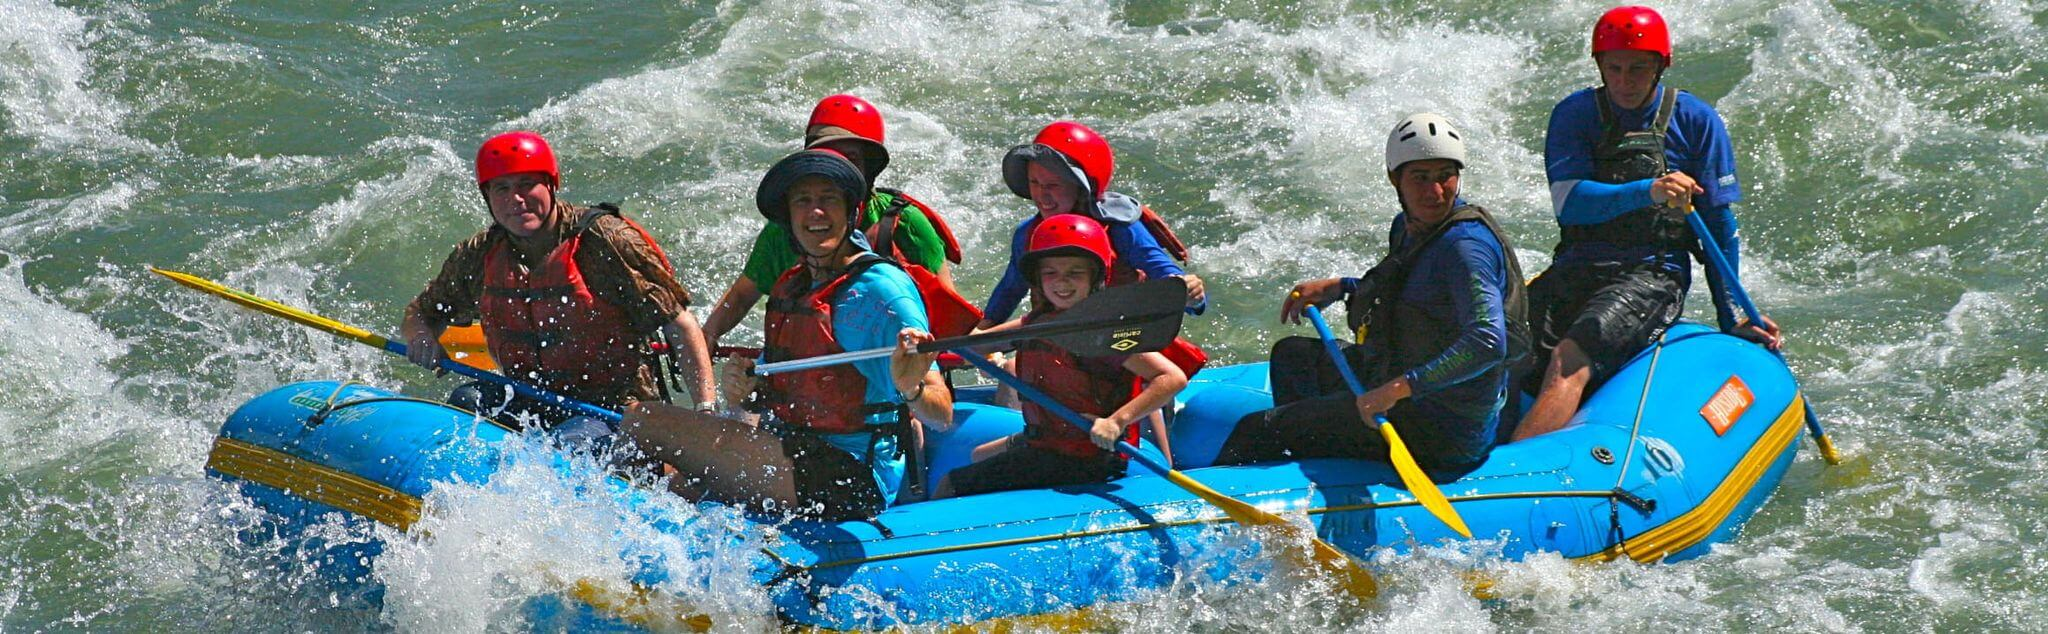 Rafting in León